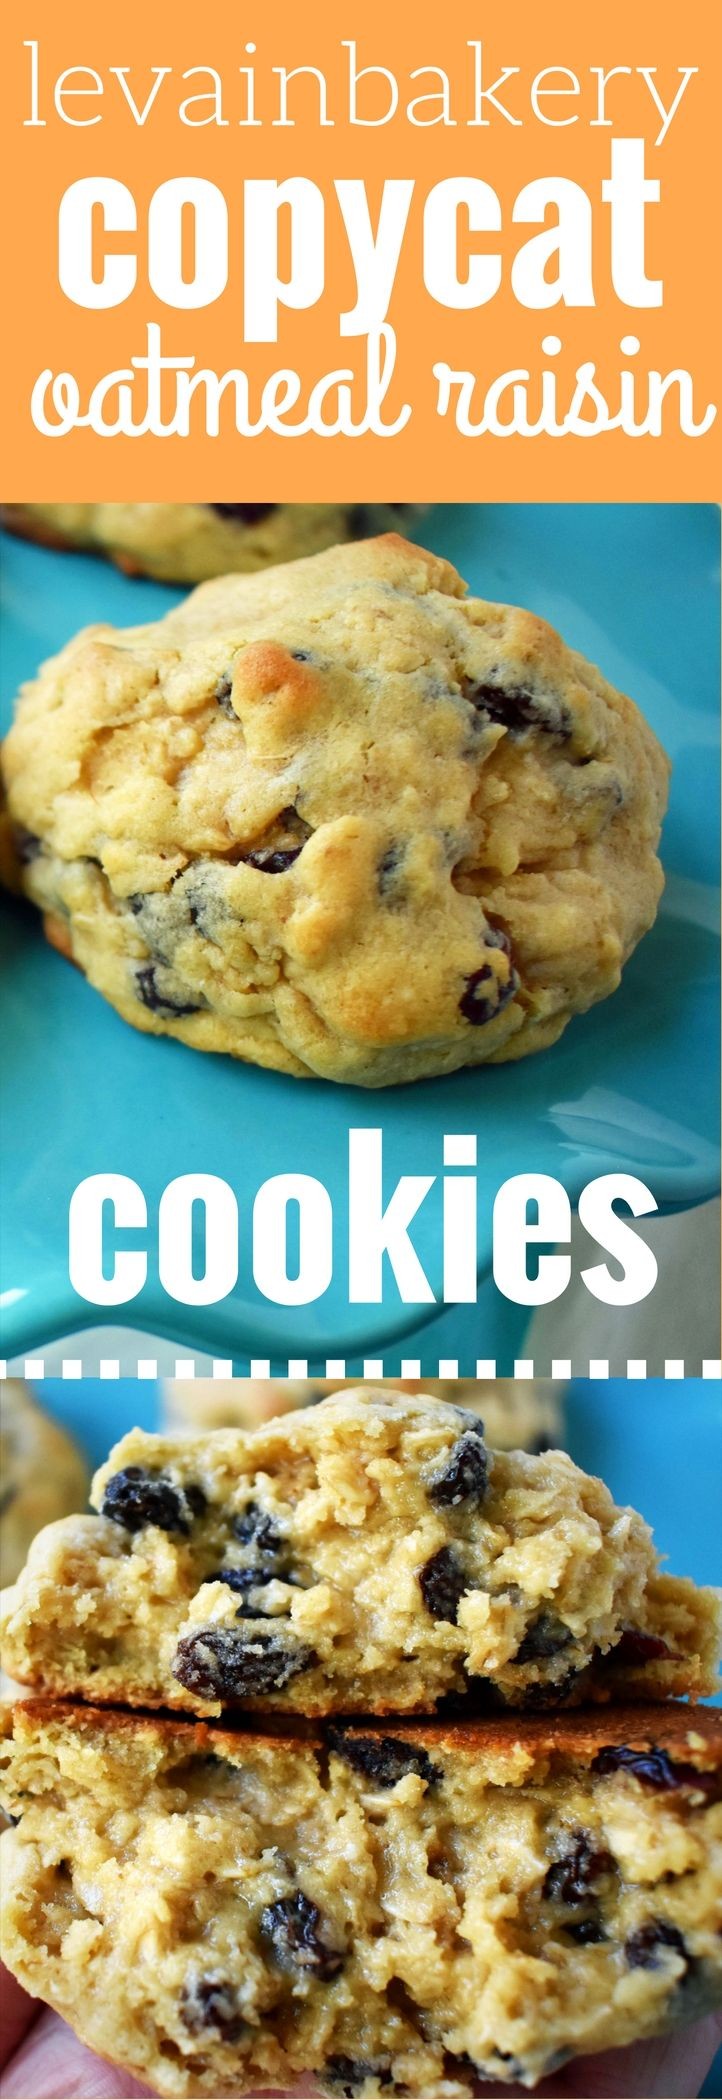 Levain Bakery Famous Oatmeal Raisin Copycat Cookies Recipe This Bakery Has A Long Line In New